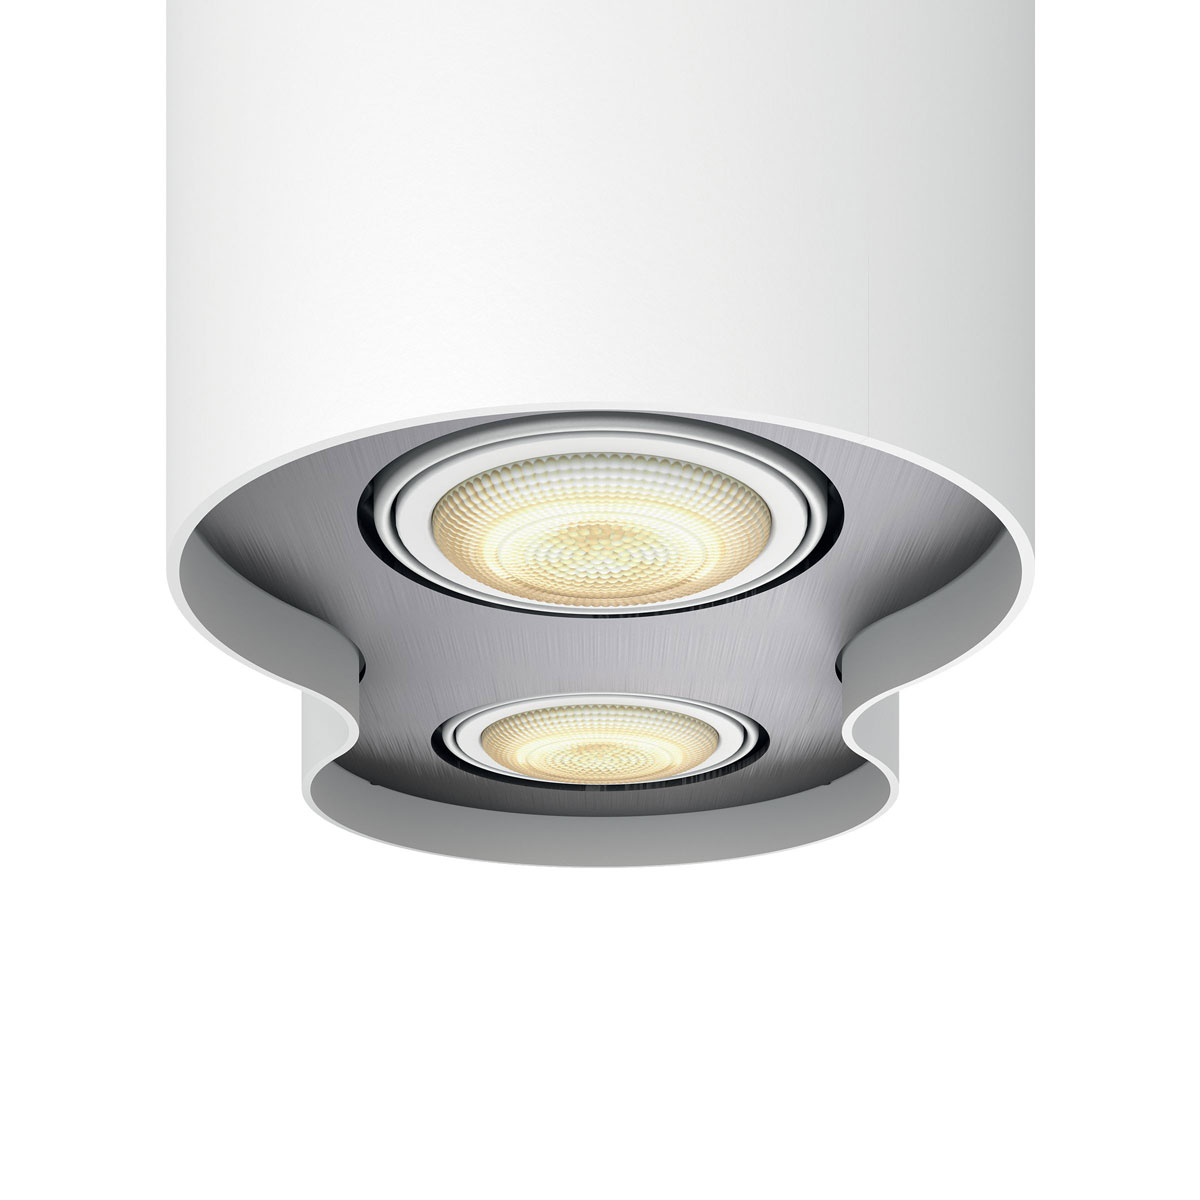 philips hue pillar 2 spot wit white ambiance incl dim switch. Black Bedroom Furniture Sets. Home Design Ideas